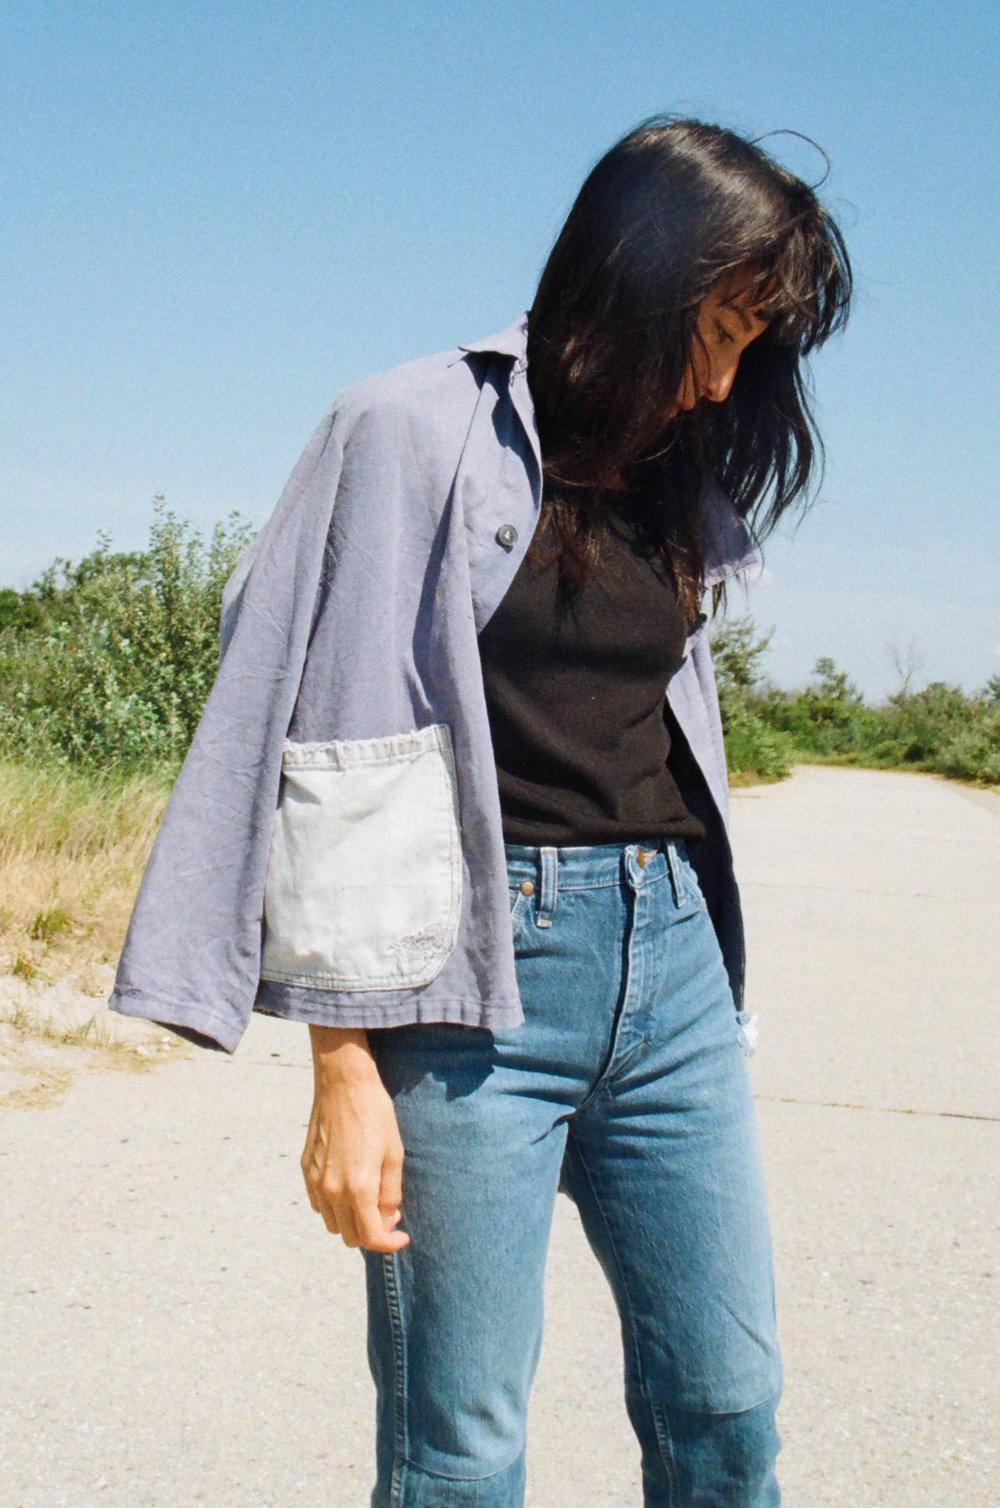 from jncos to levi's: writer lisa przystup on her long-standing love affair with blue jeans